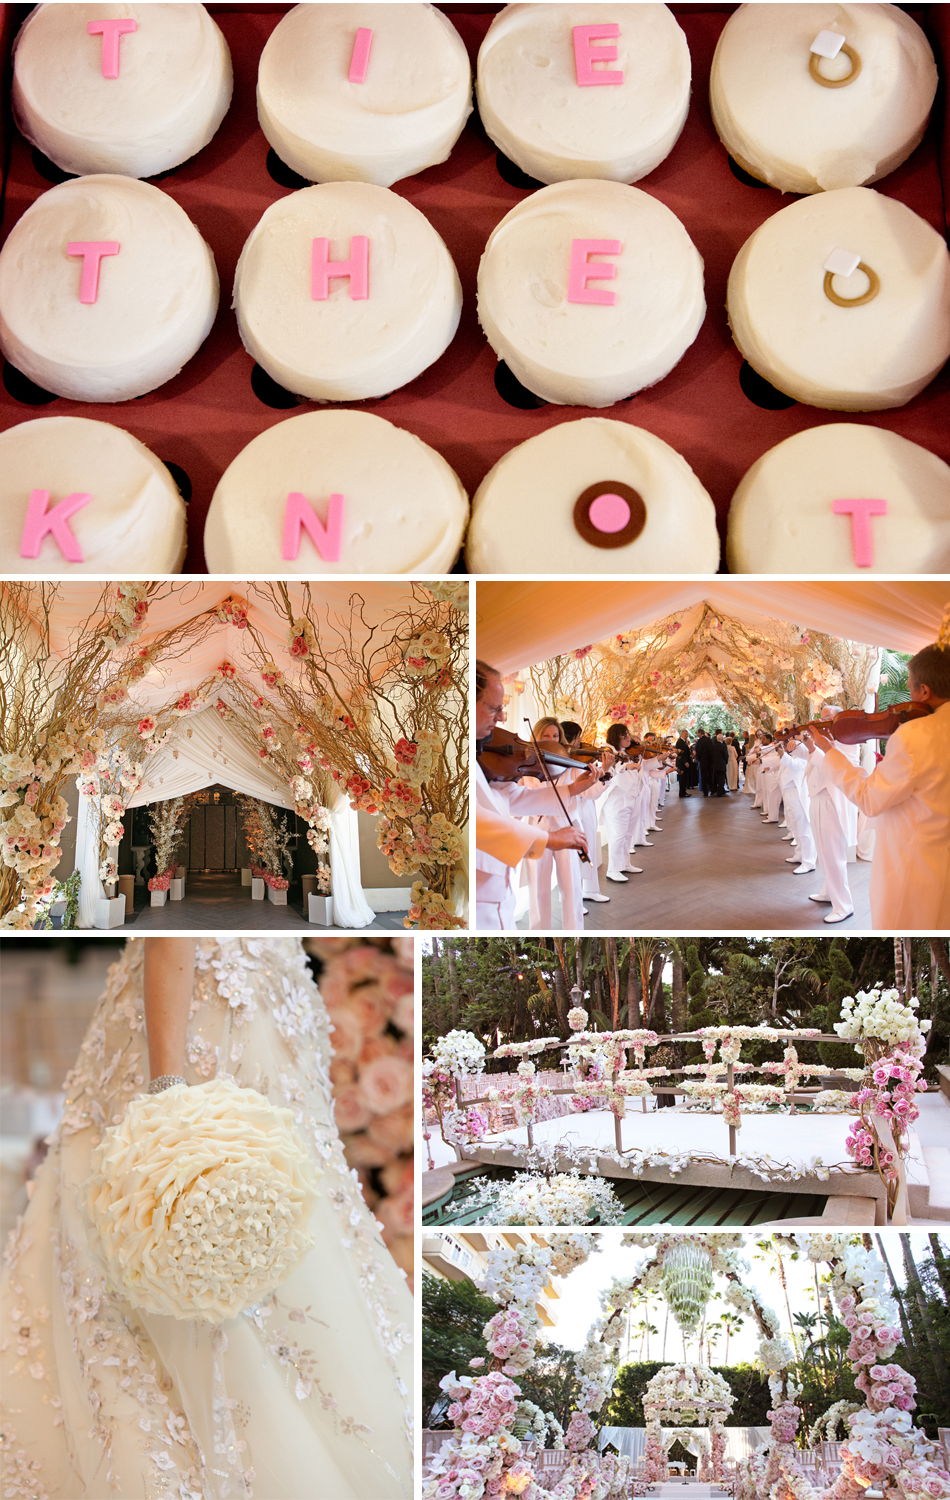 internationaleventcompany.com | International Event Company Los Angeles Wedding Planner and Designer | Weddings at The Four Seasons and Beverly Hills Hotel | Luxury Event Planners in Southern California _.jpg